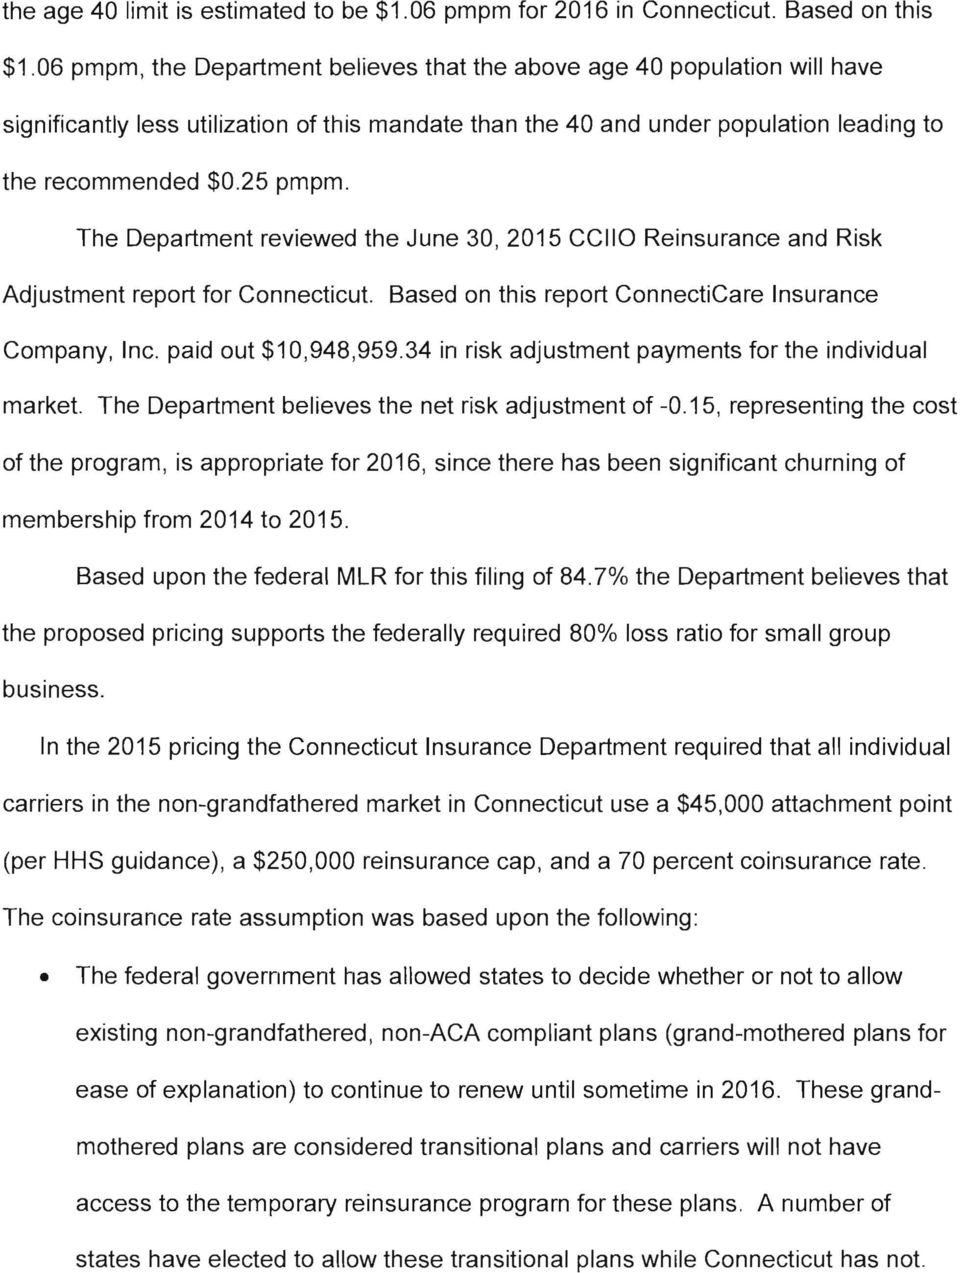 The Department reviewed the June 30, 2015 CCIIO Reinsurance and Risk Adjustment report for Connecticut. Based on this report ConnectiCare Insurance Company, Inc. paid out $10,948,959.